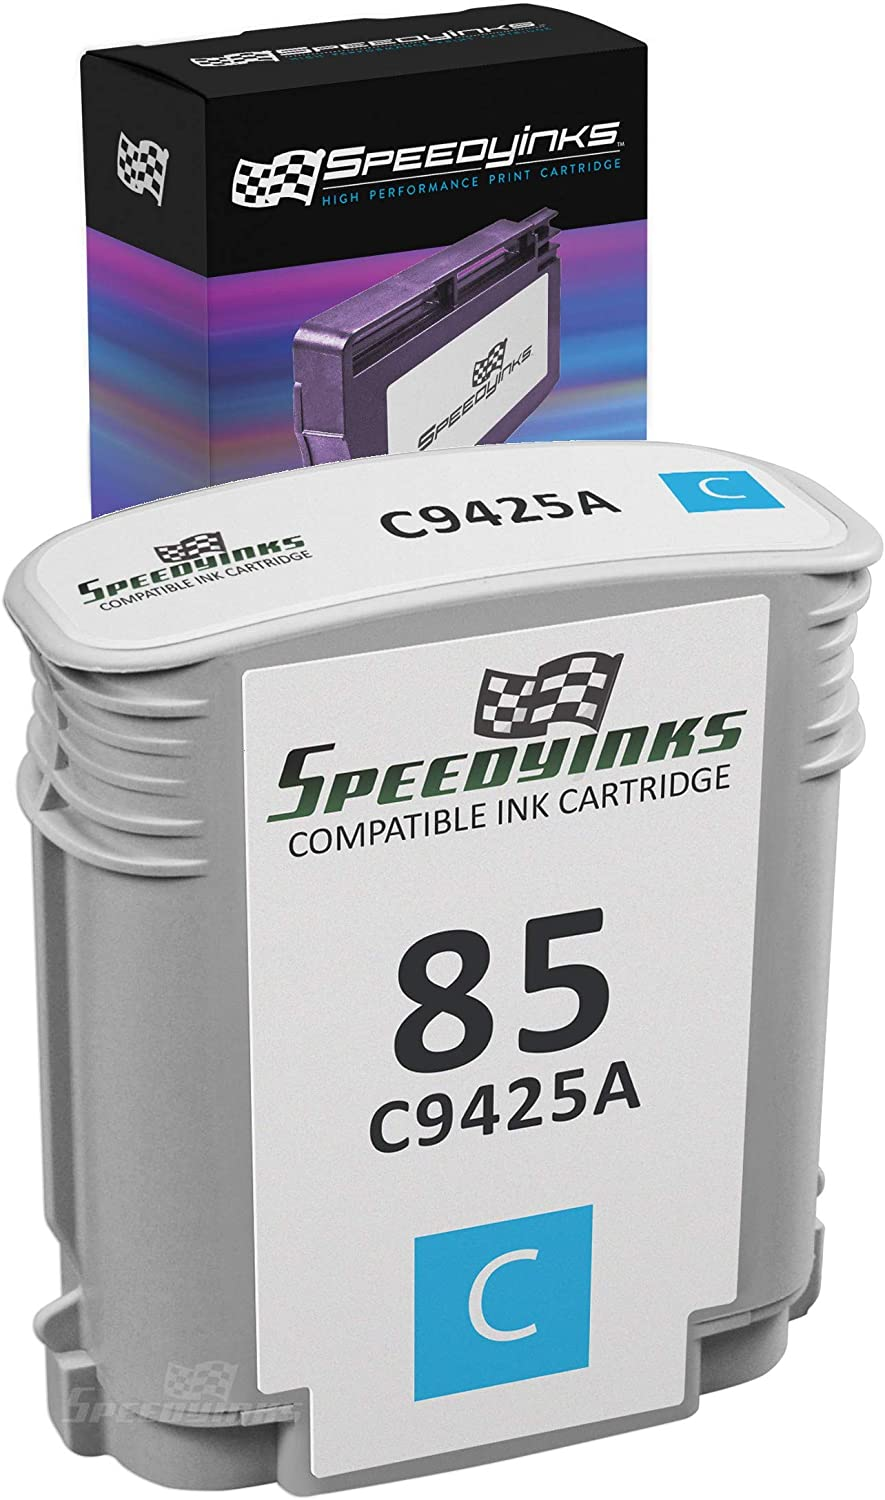 Speedy Inks Remanufactured Ink Cartridge Replacement for HP 85 / C9425A (Cyan)